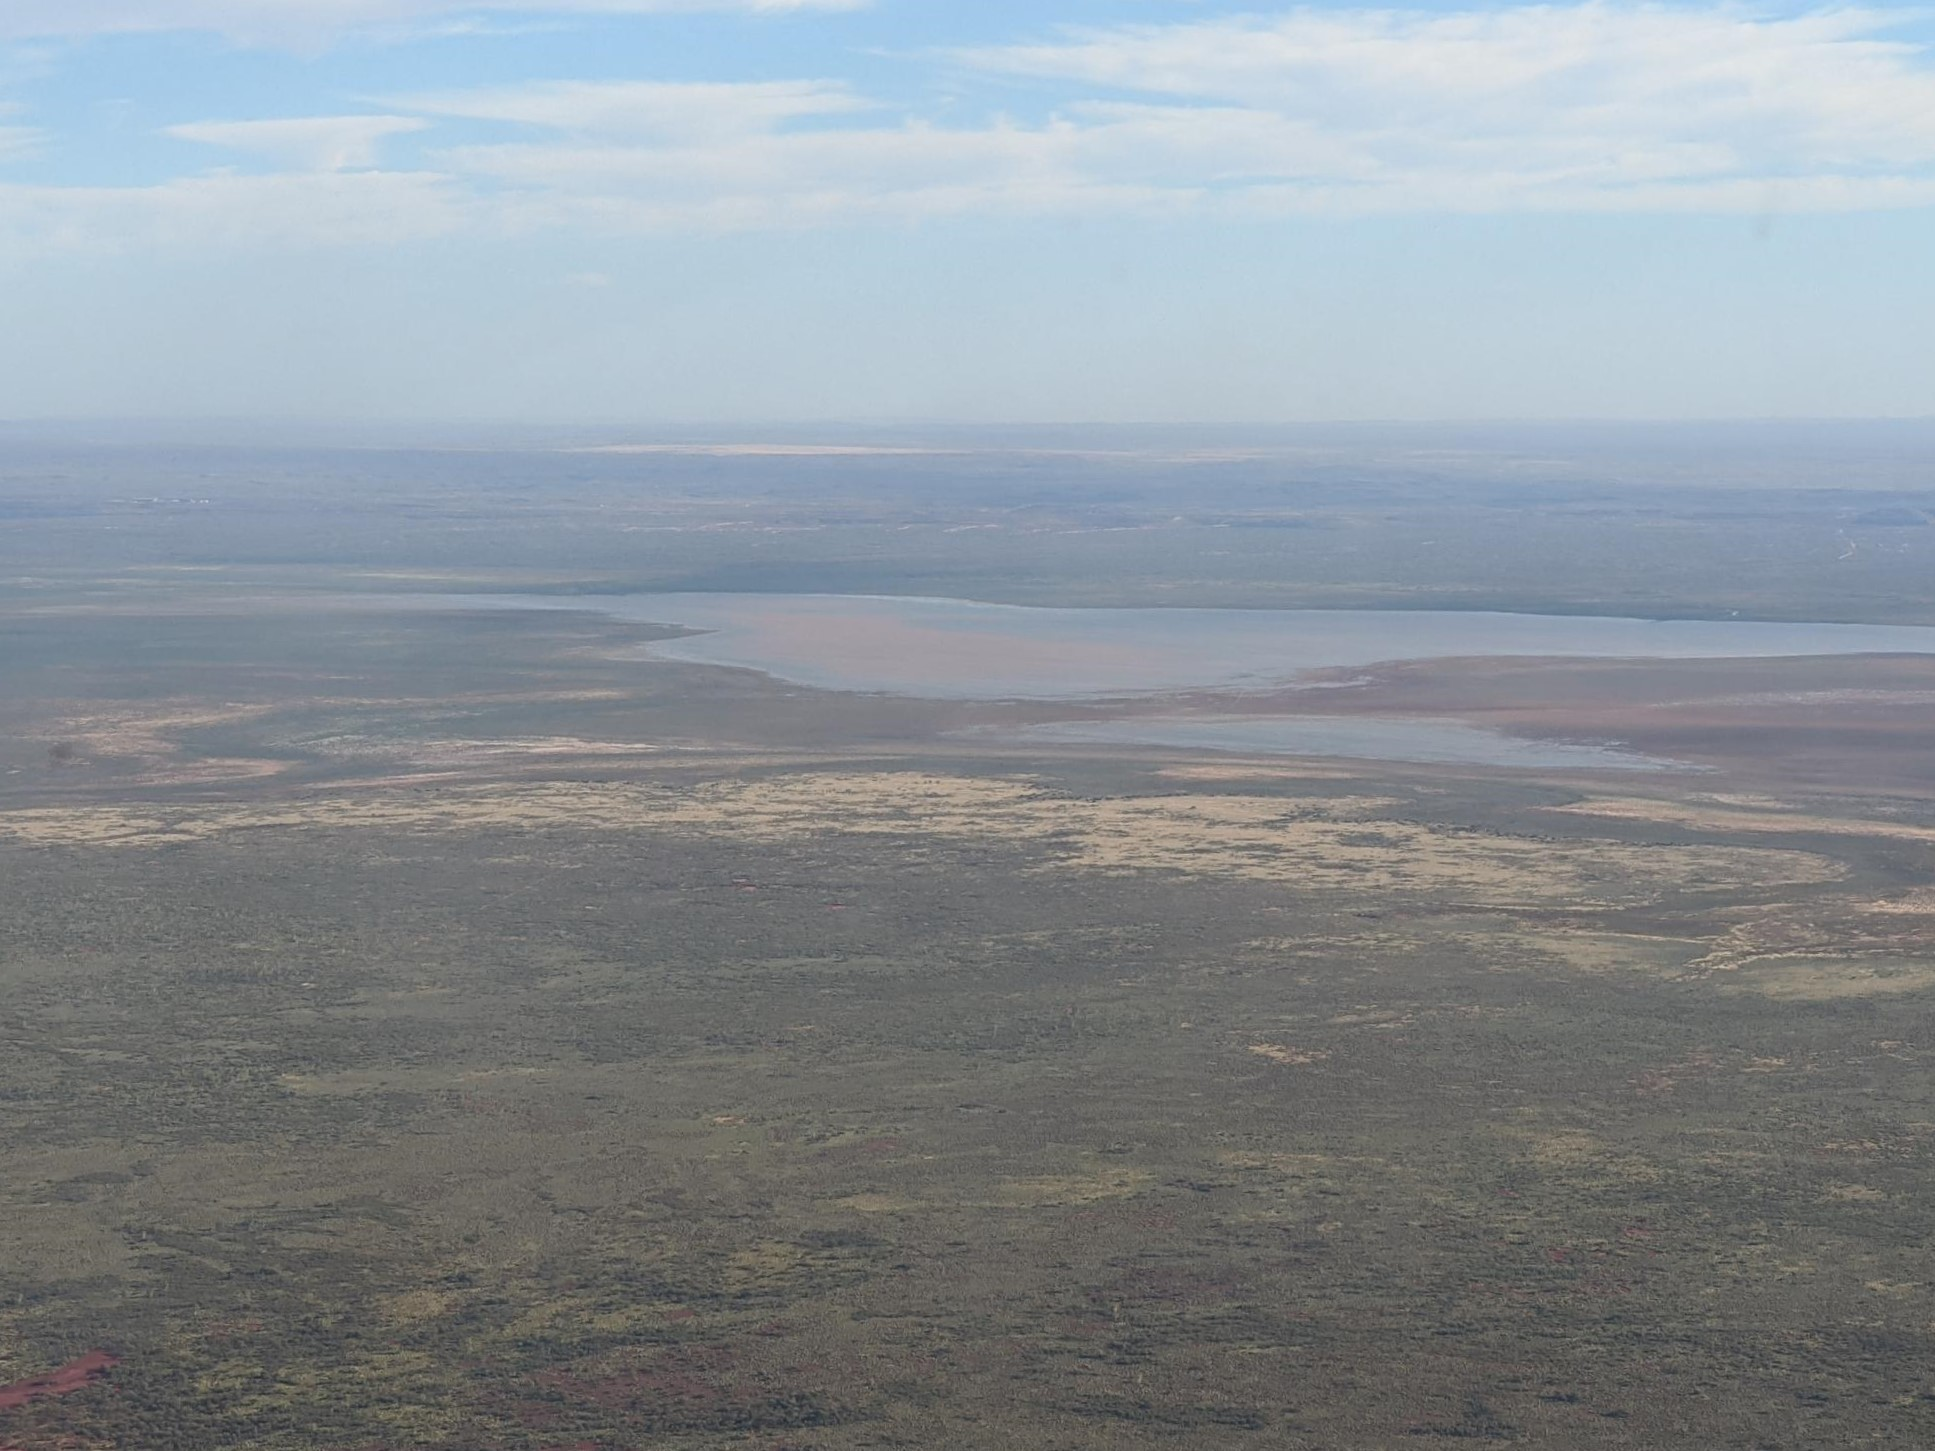 Aerial view of the Fortescue marsh in the Pilbara, known for its biodiversity. Photo: K. Nguyen.